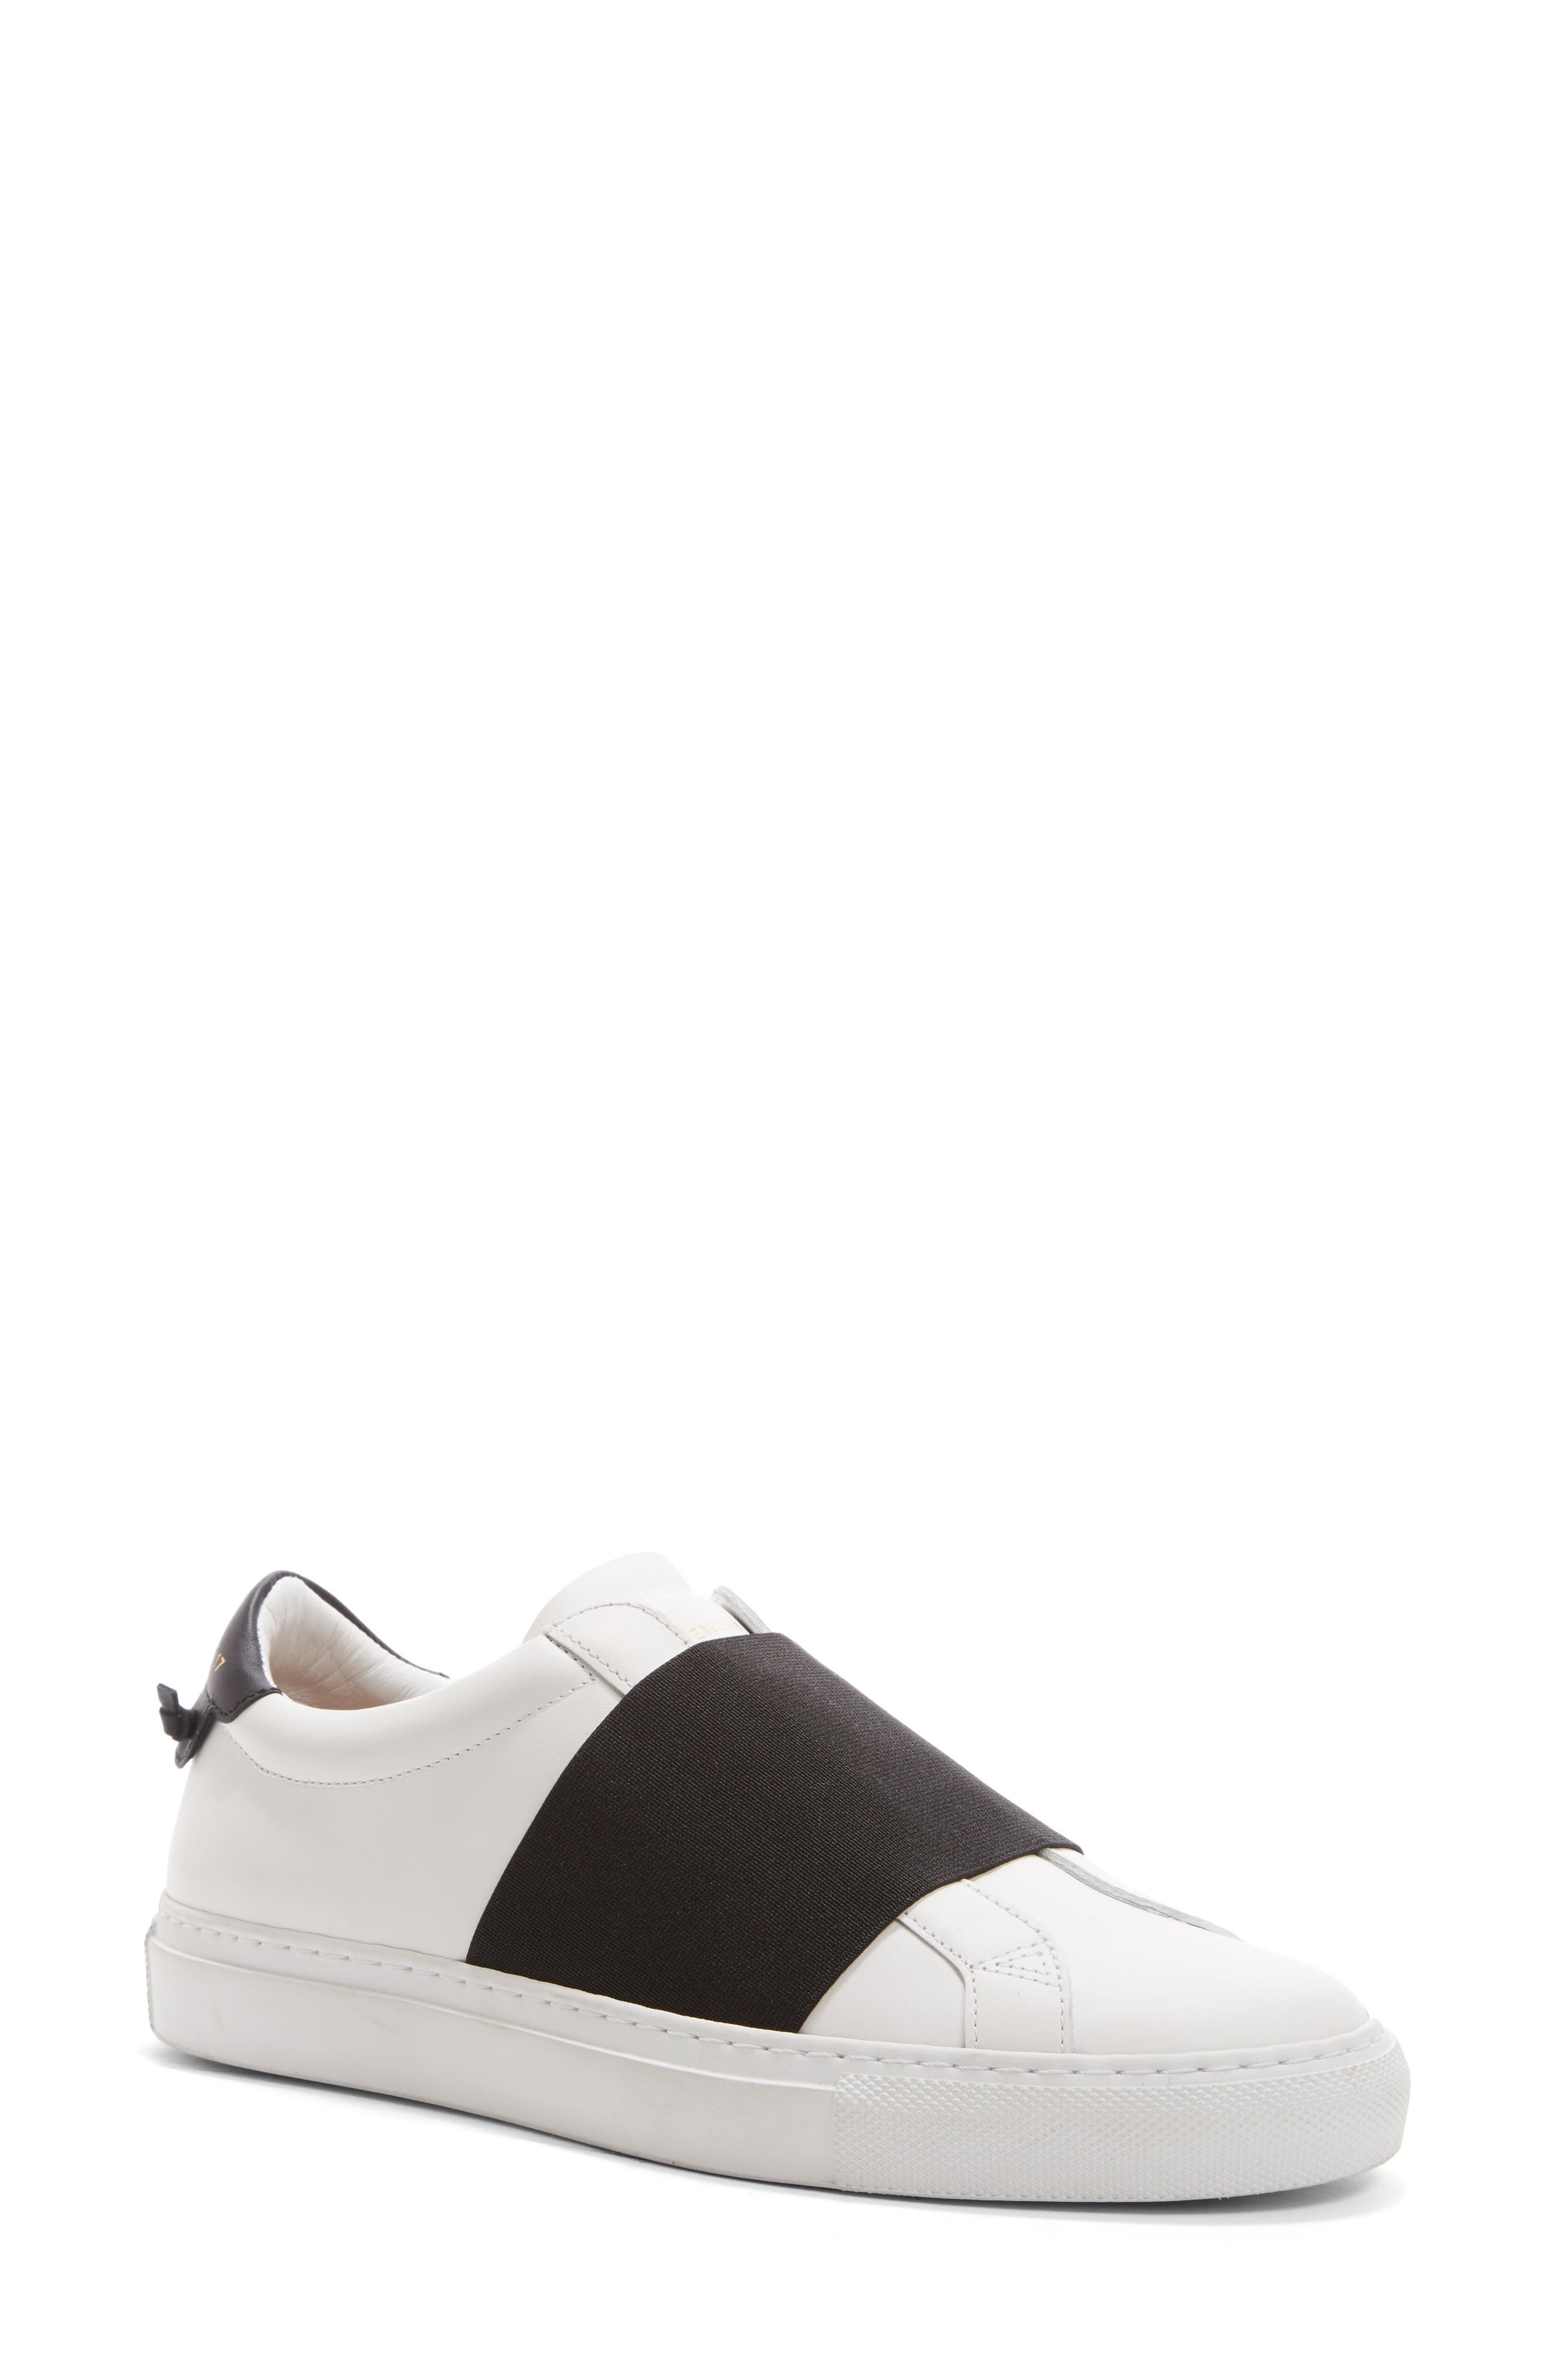 Givenchy Low Top Slip-On Sneaker (Women)